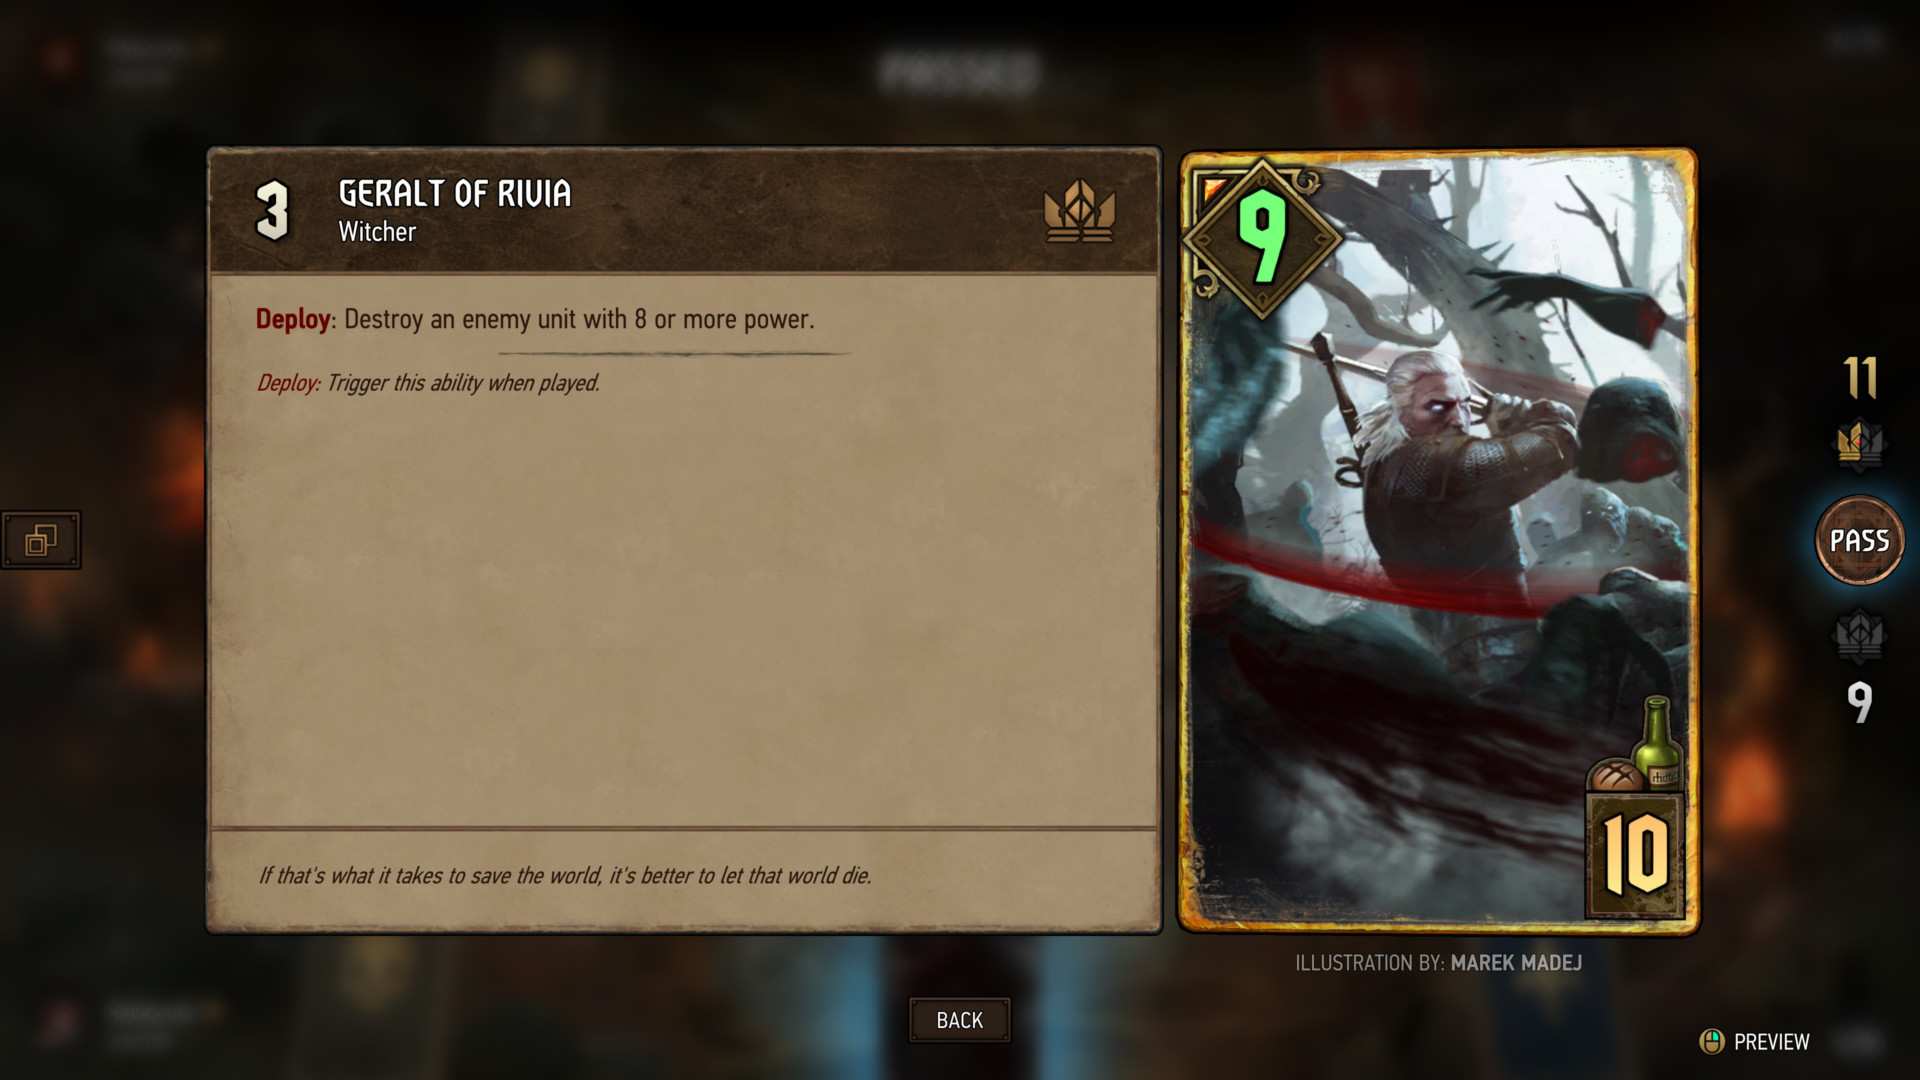 Card preview screenshot of Gwent: The Witcher Card Game video game interface.